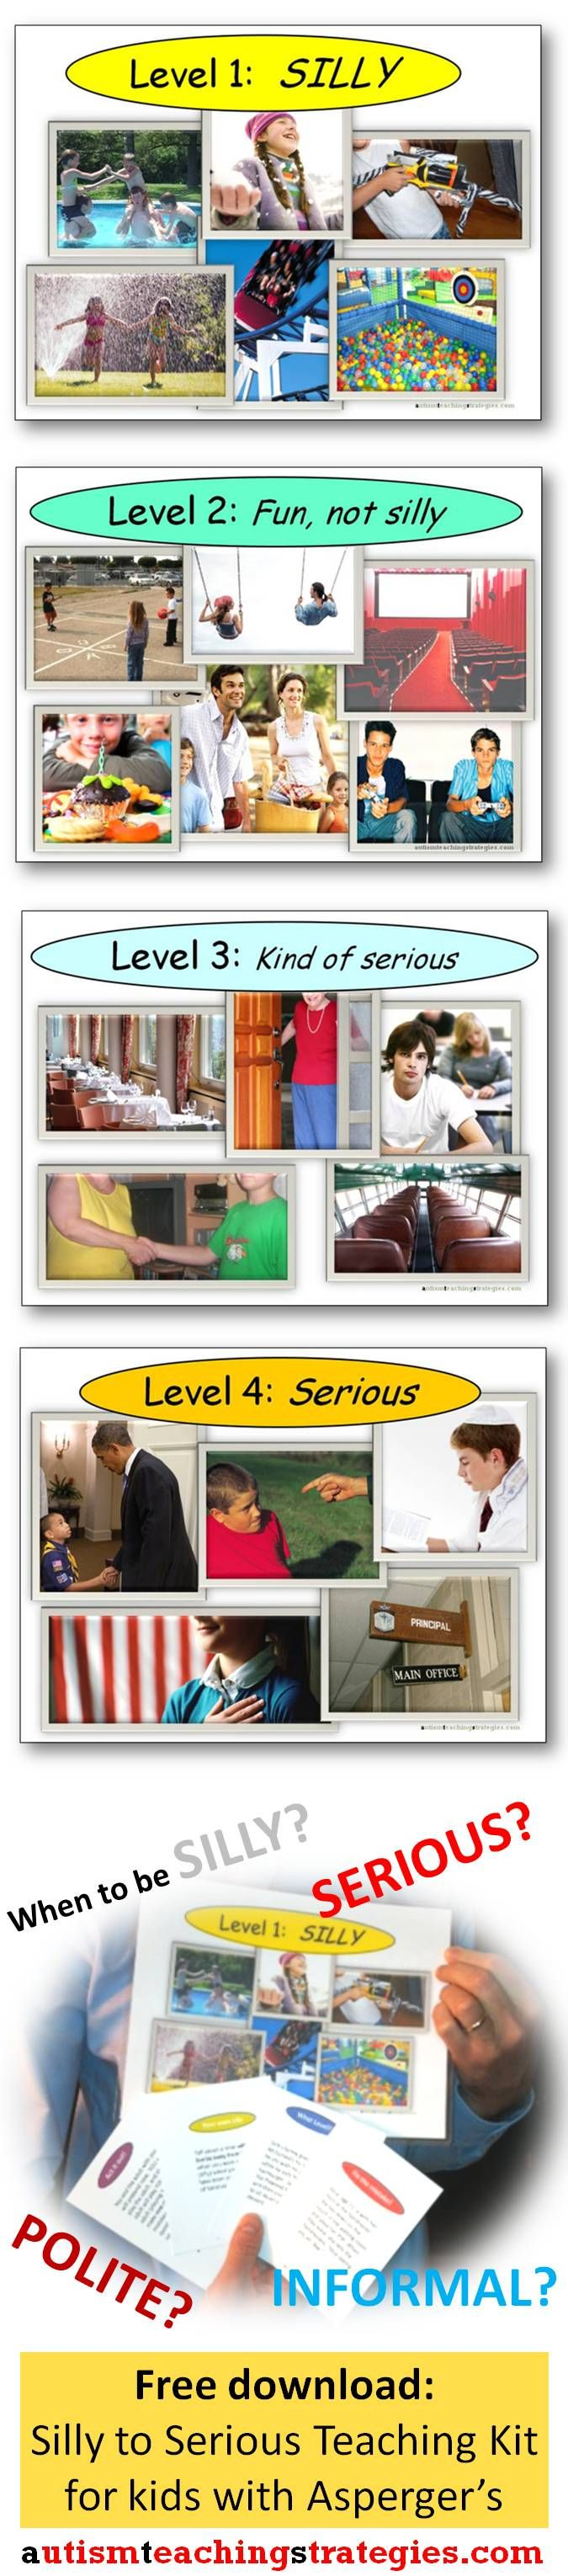 Understanding and practicing levels of formality across different social contexts can be awfully confusing to many children with Asperger's and other autism spectrum disorders.  This is a four-level visual system and created 36 cards to create a social skills teaching system that can also be used as a game.  Easy to download and print out. Free. This looks like it could be very useful!